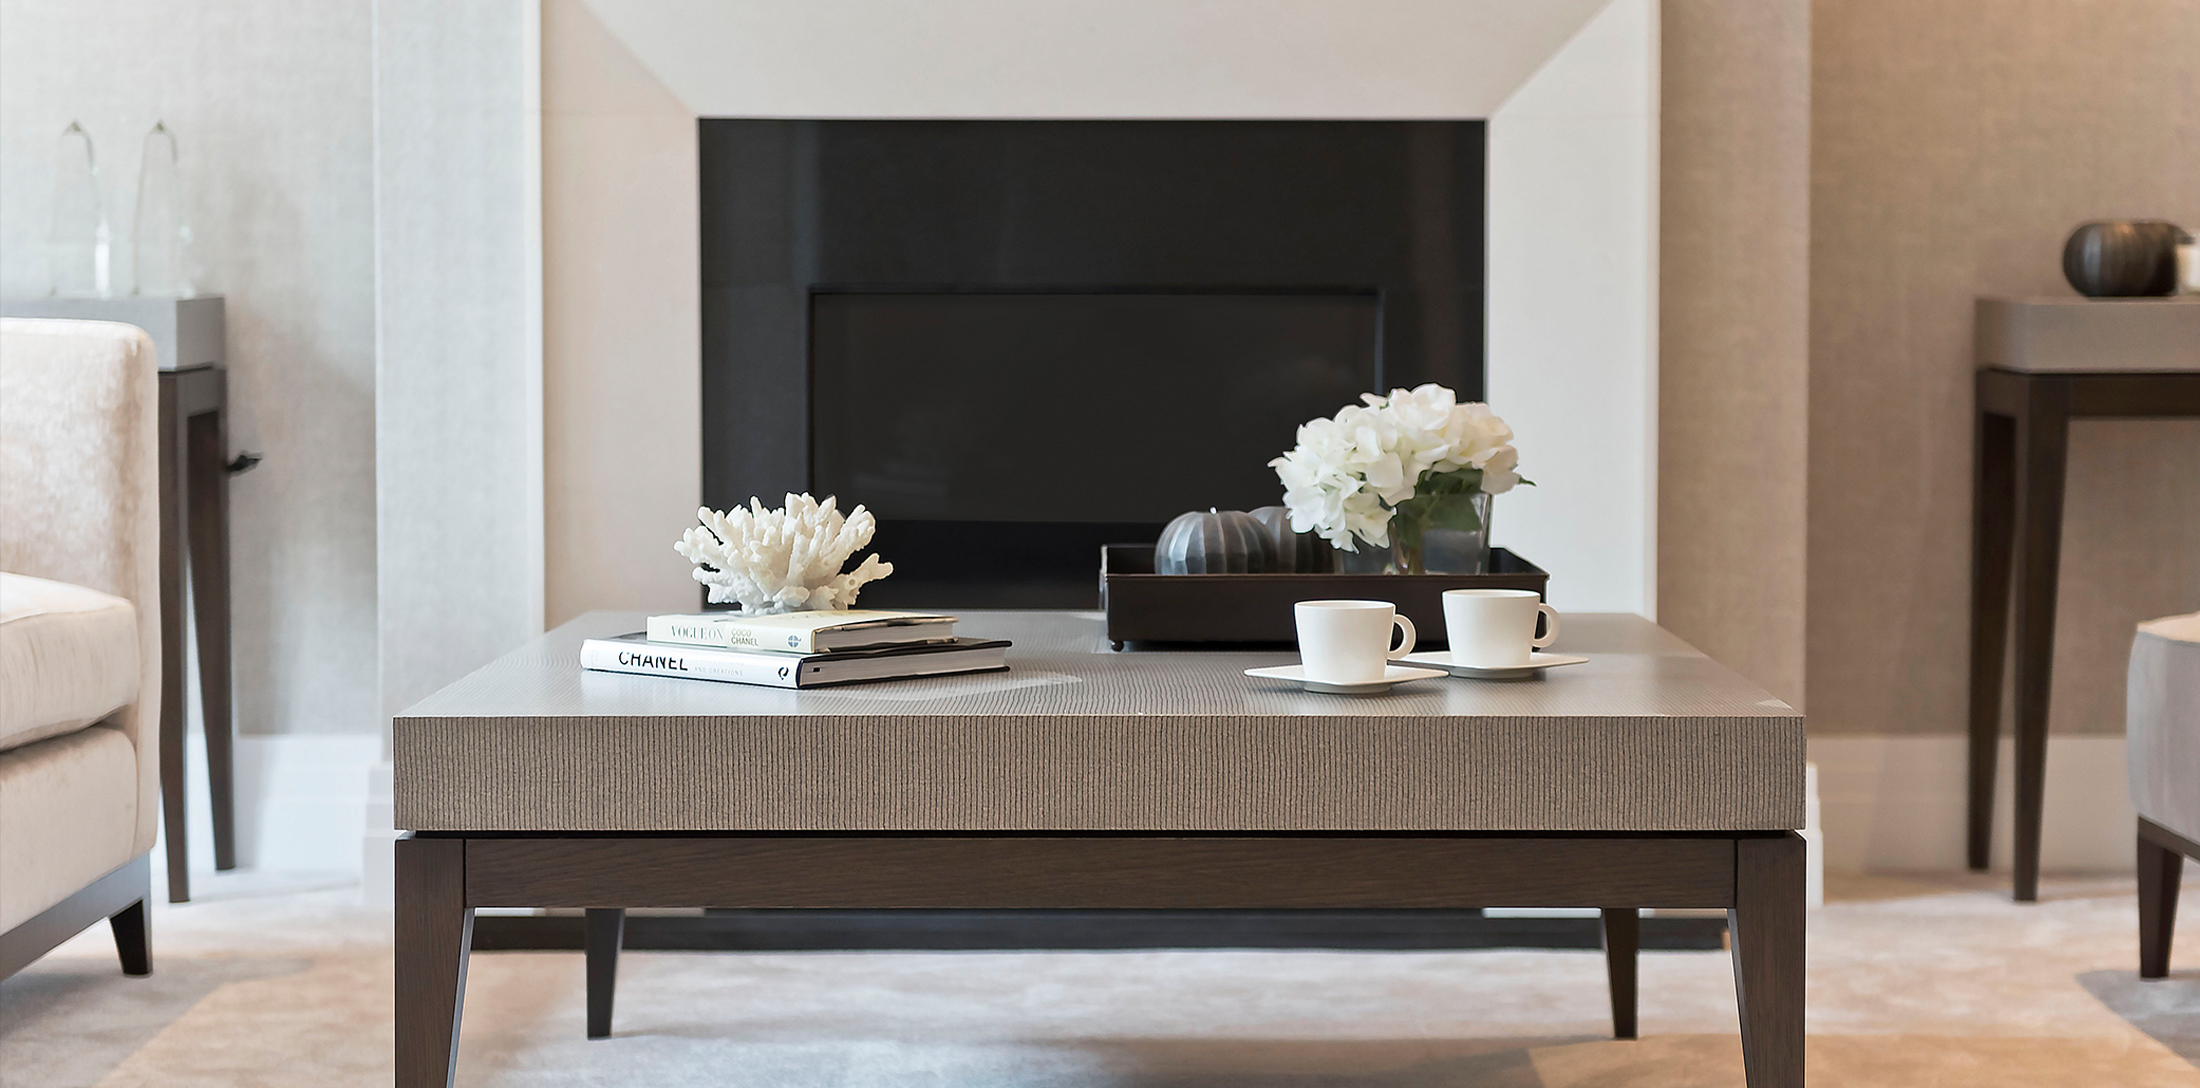 concept-development-property-contact-page-henley-drive-coffee-table-fireplace-1